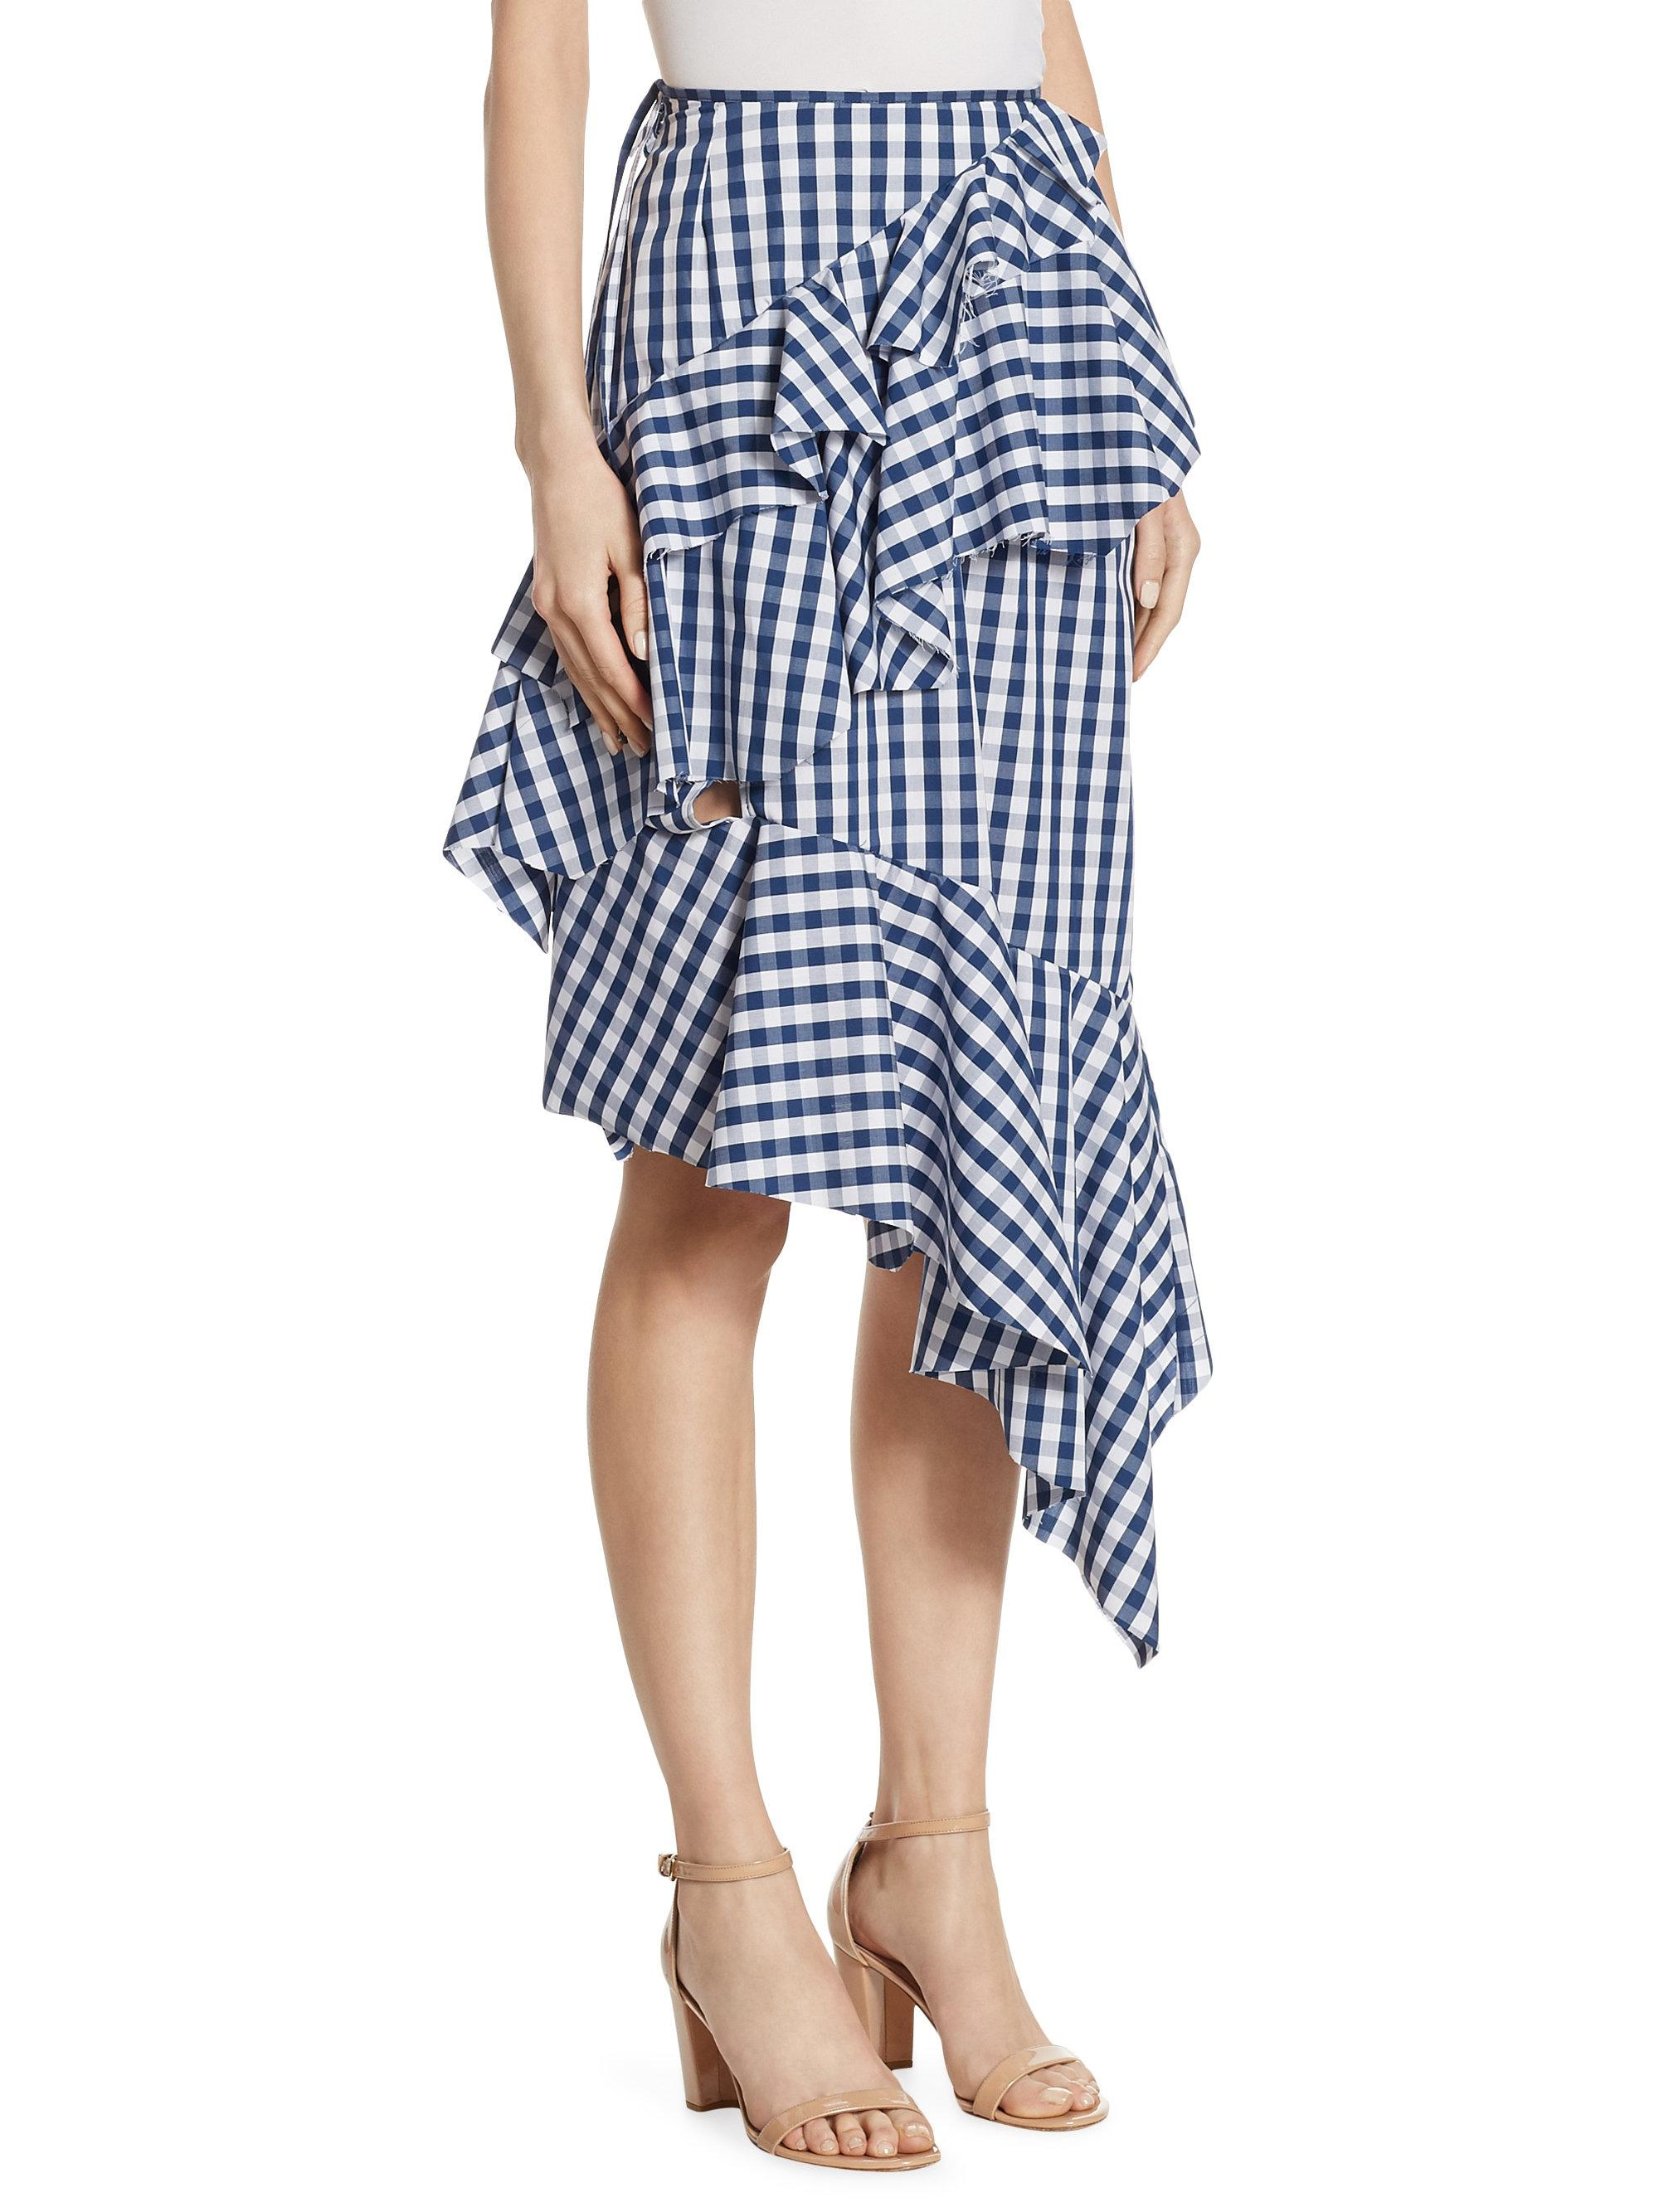 3dec42f03f Marques'Almeida Asymmetric Gingham Plaid Skirt in Blue - Lyst